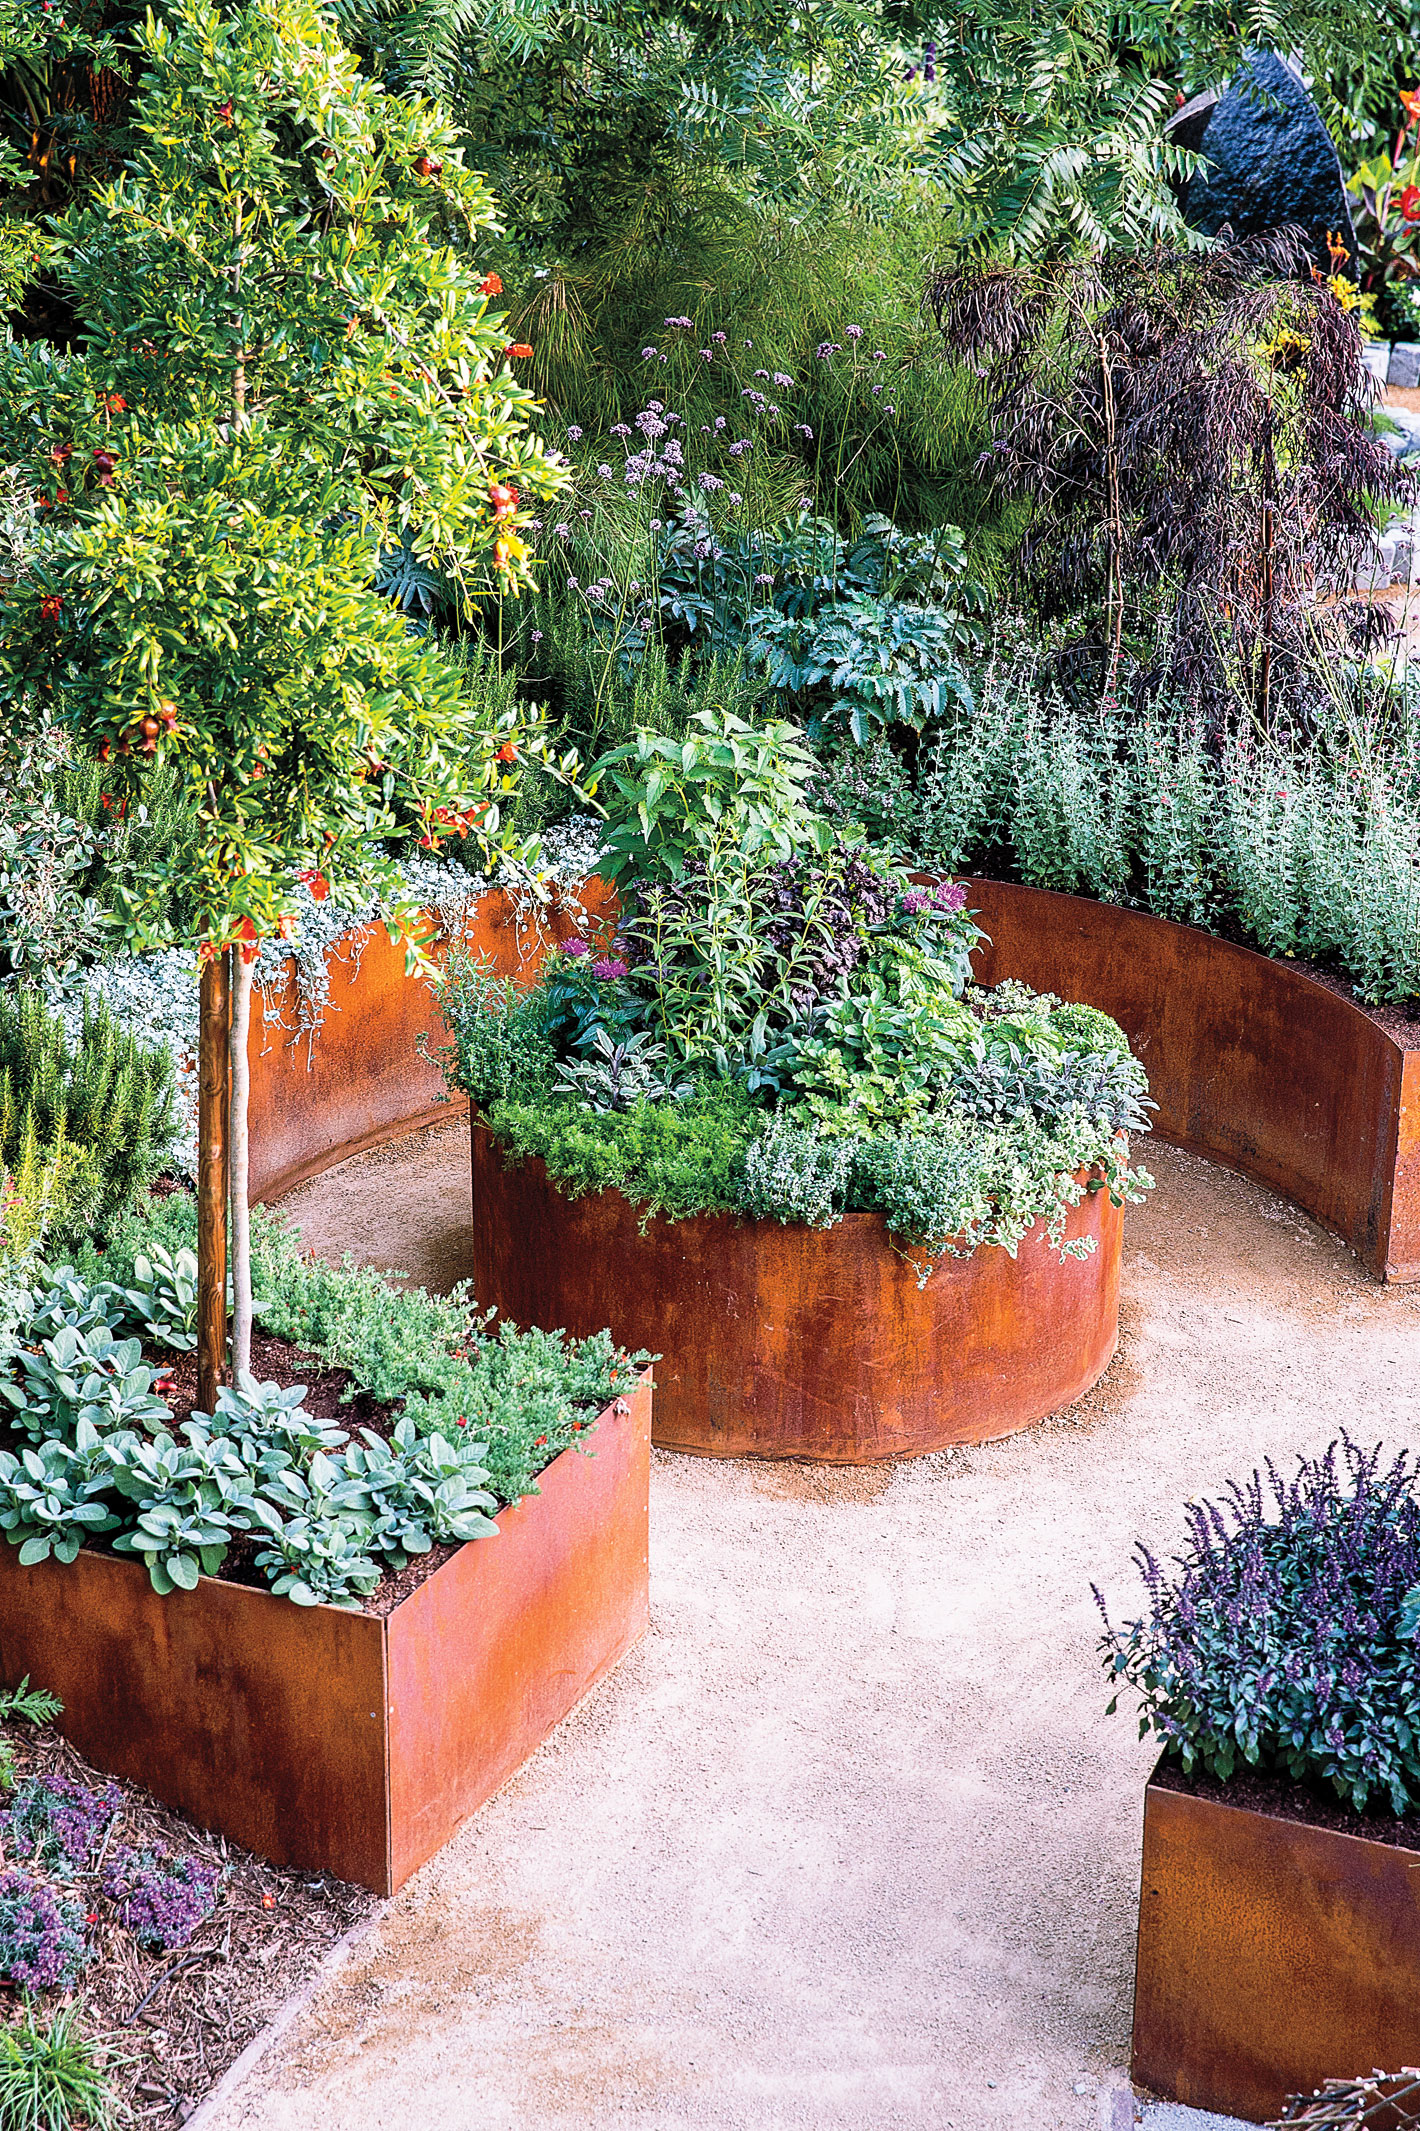 10 Design Ideas for a Tiny Edible Garden